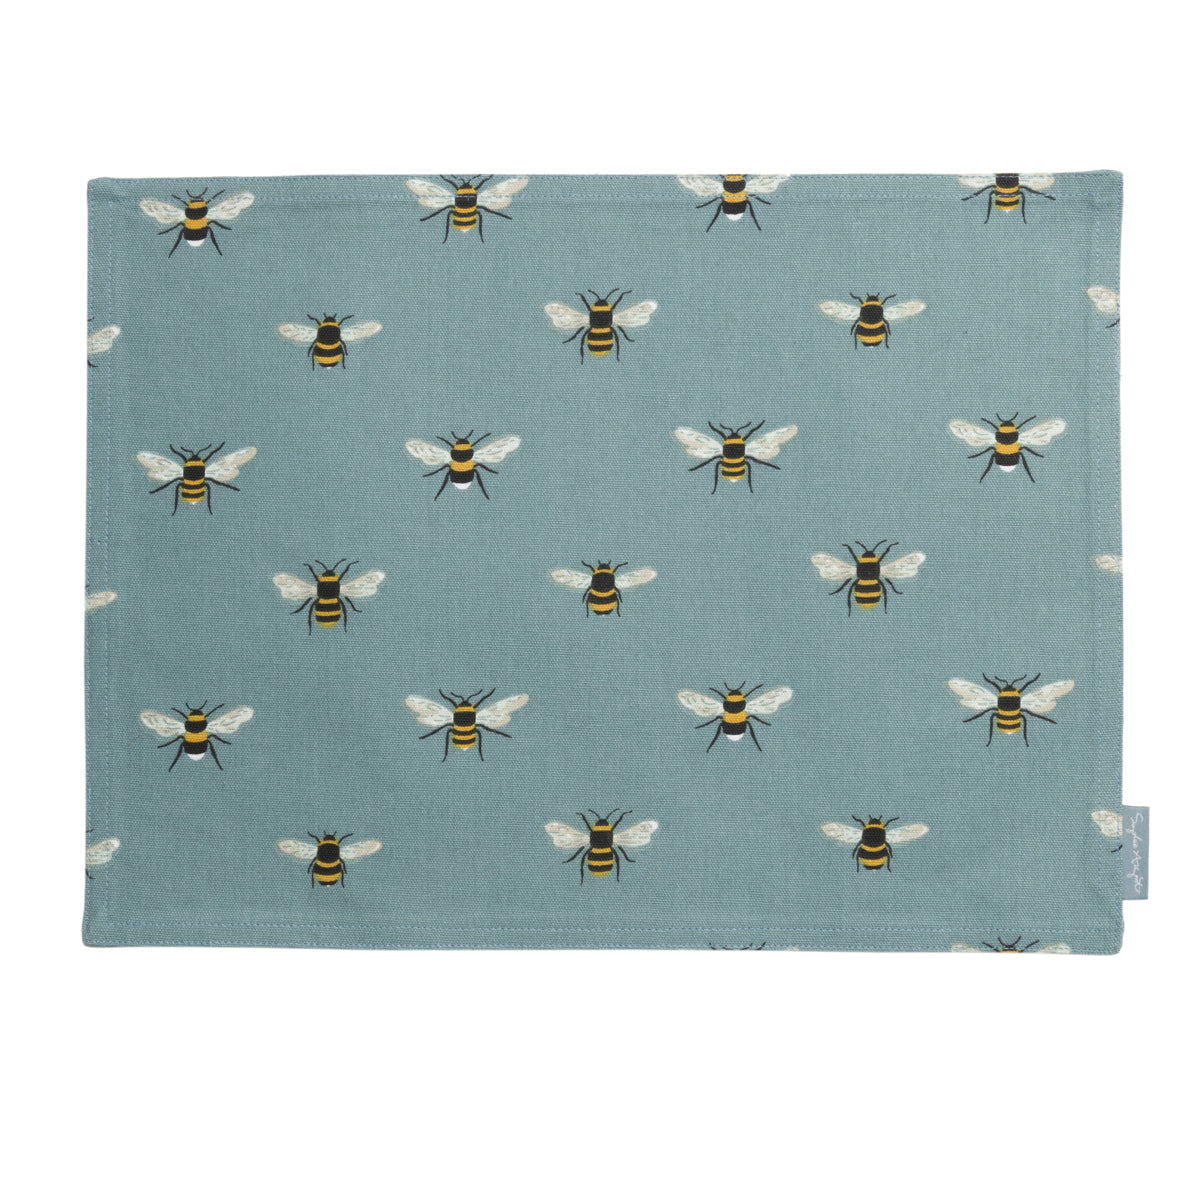 Bees Teal Fabric Placemat by Sophie Allport